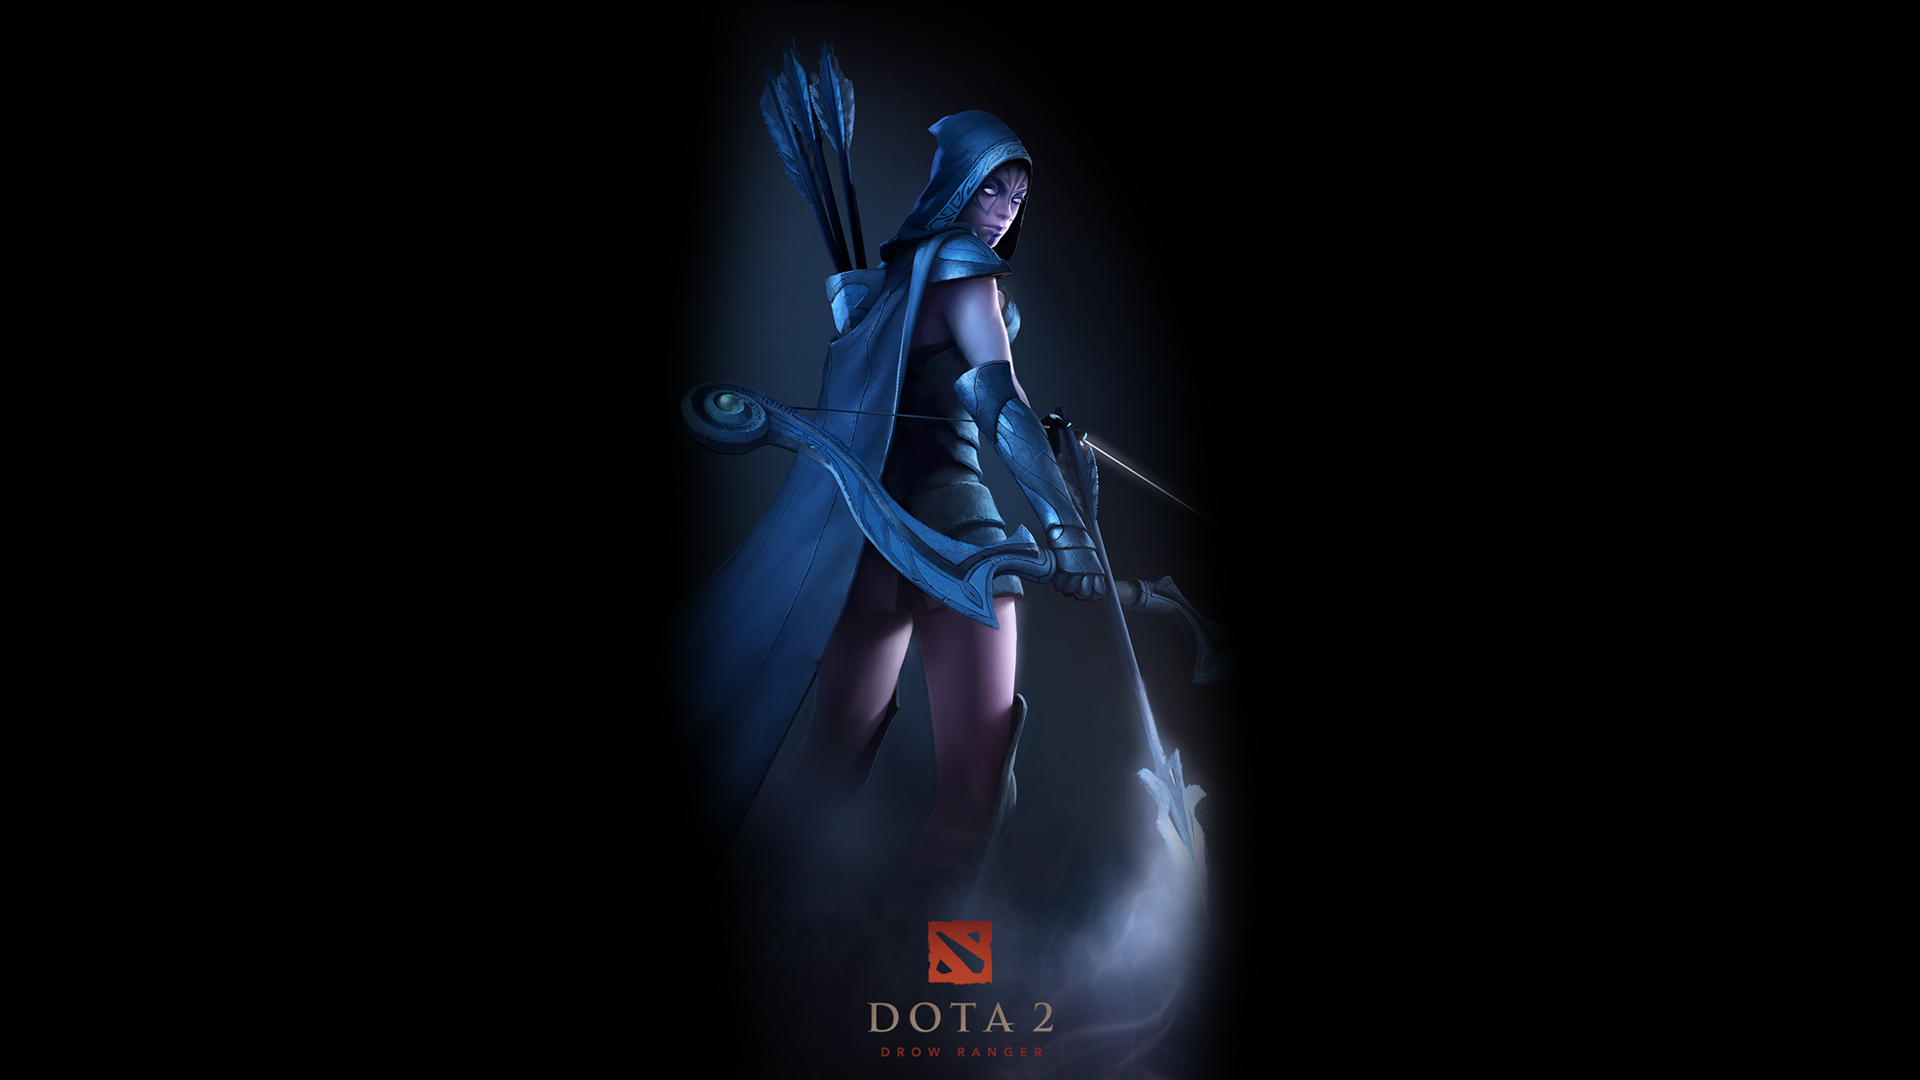 dota 2 wallpaper for desktop wallpaper 874518